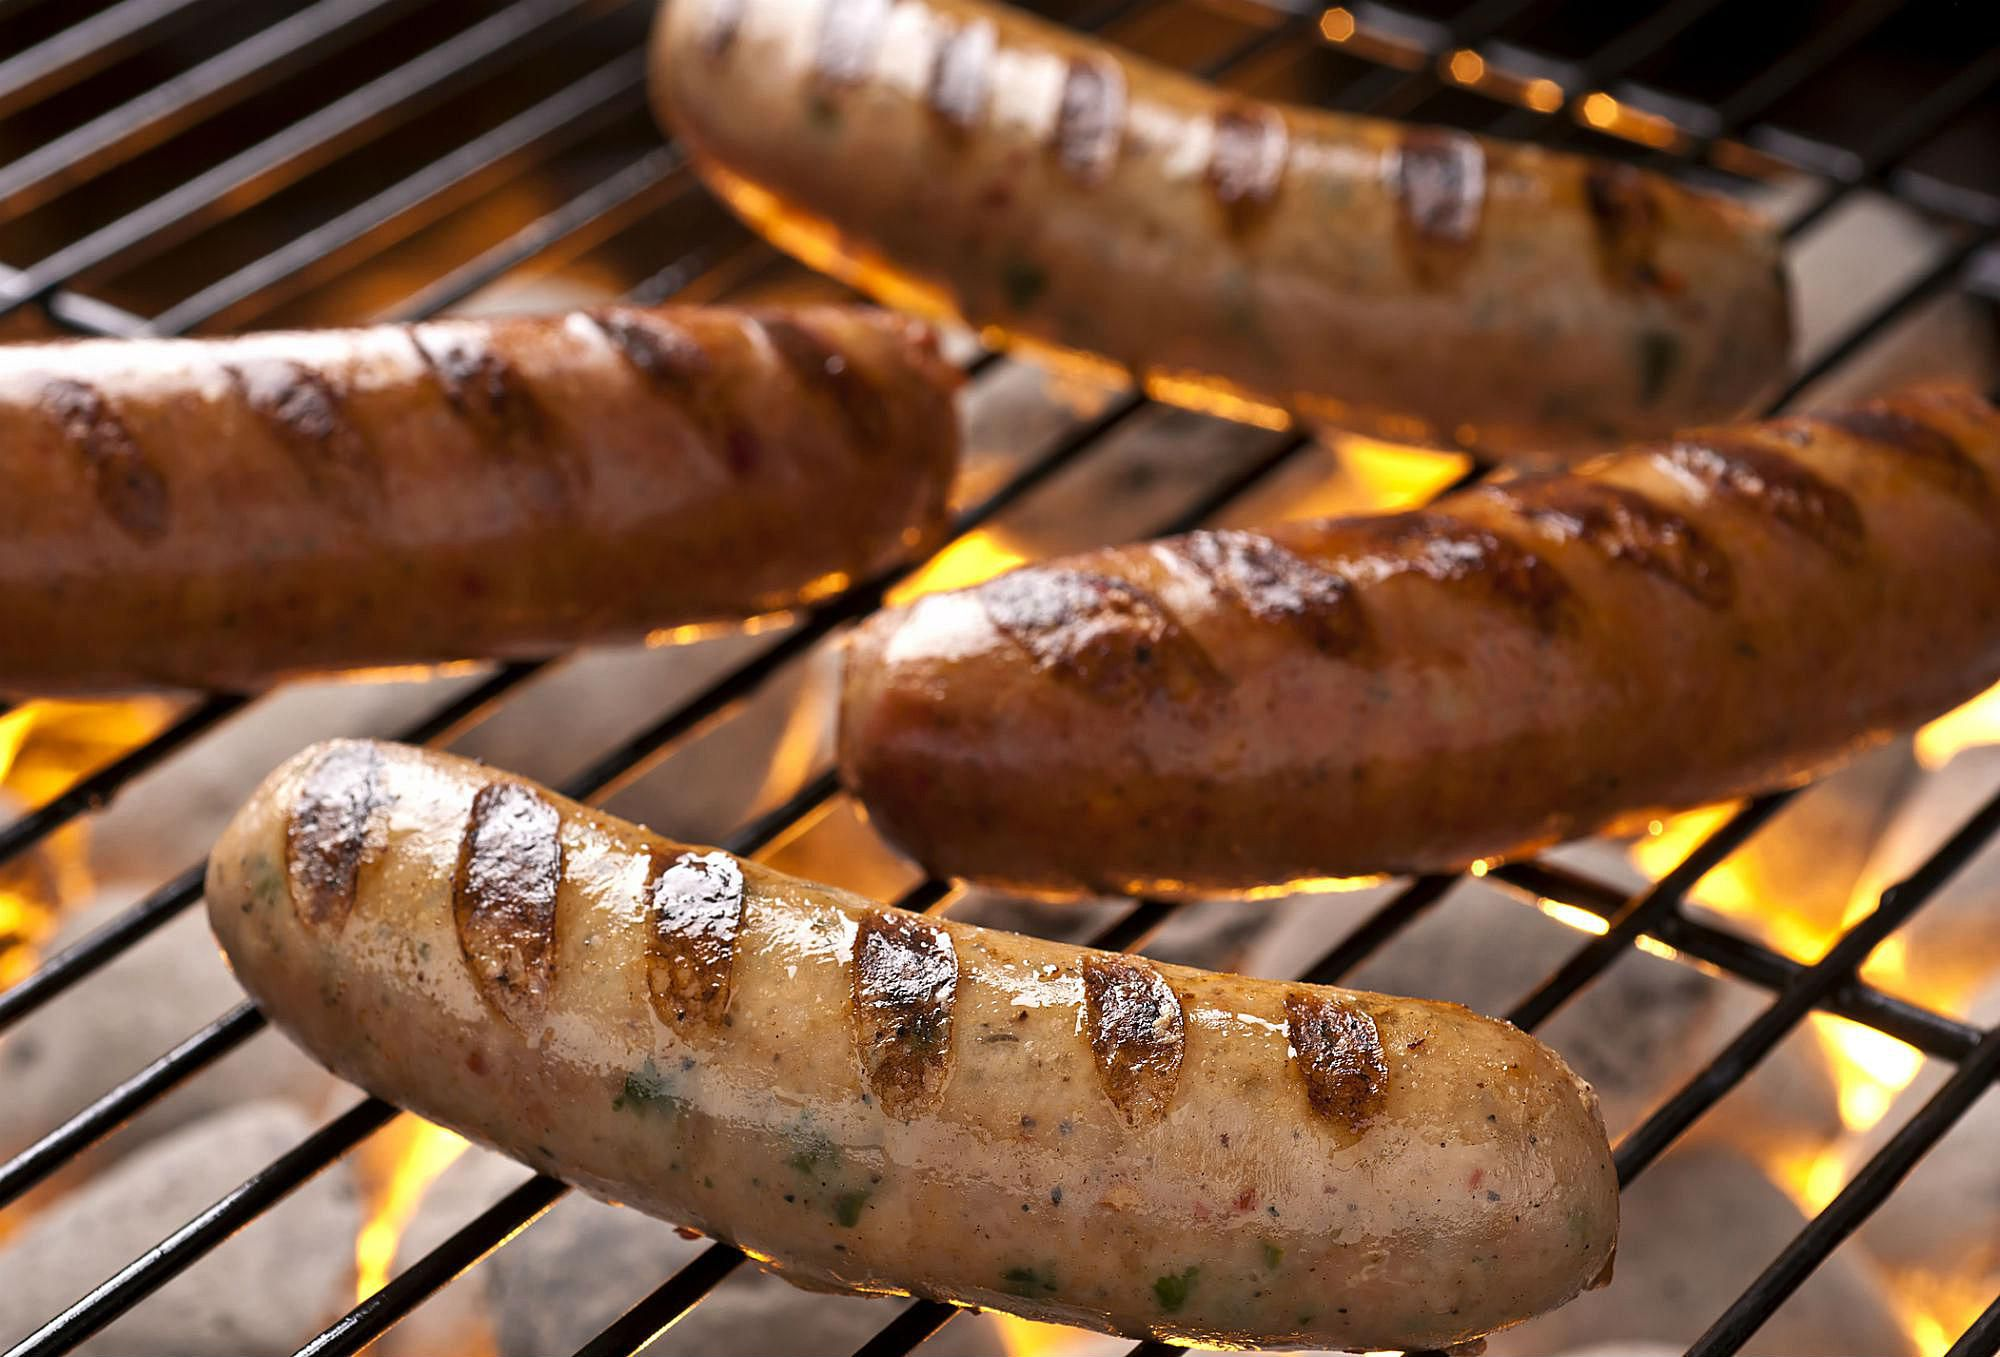 grilled_sausage-589e67835f9b58819c458a96